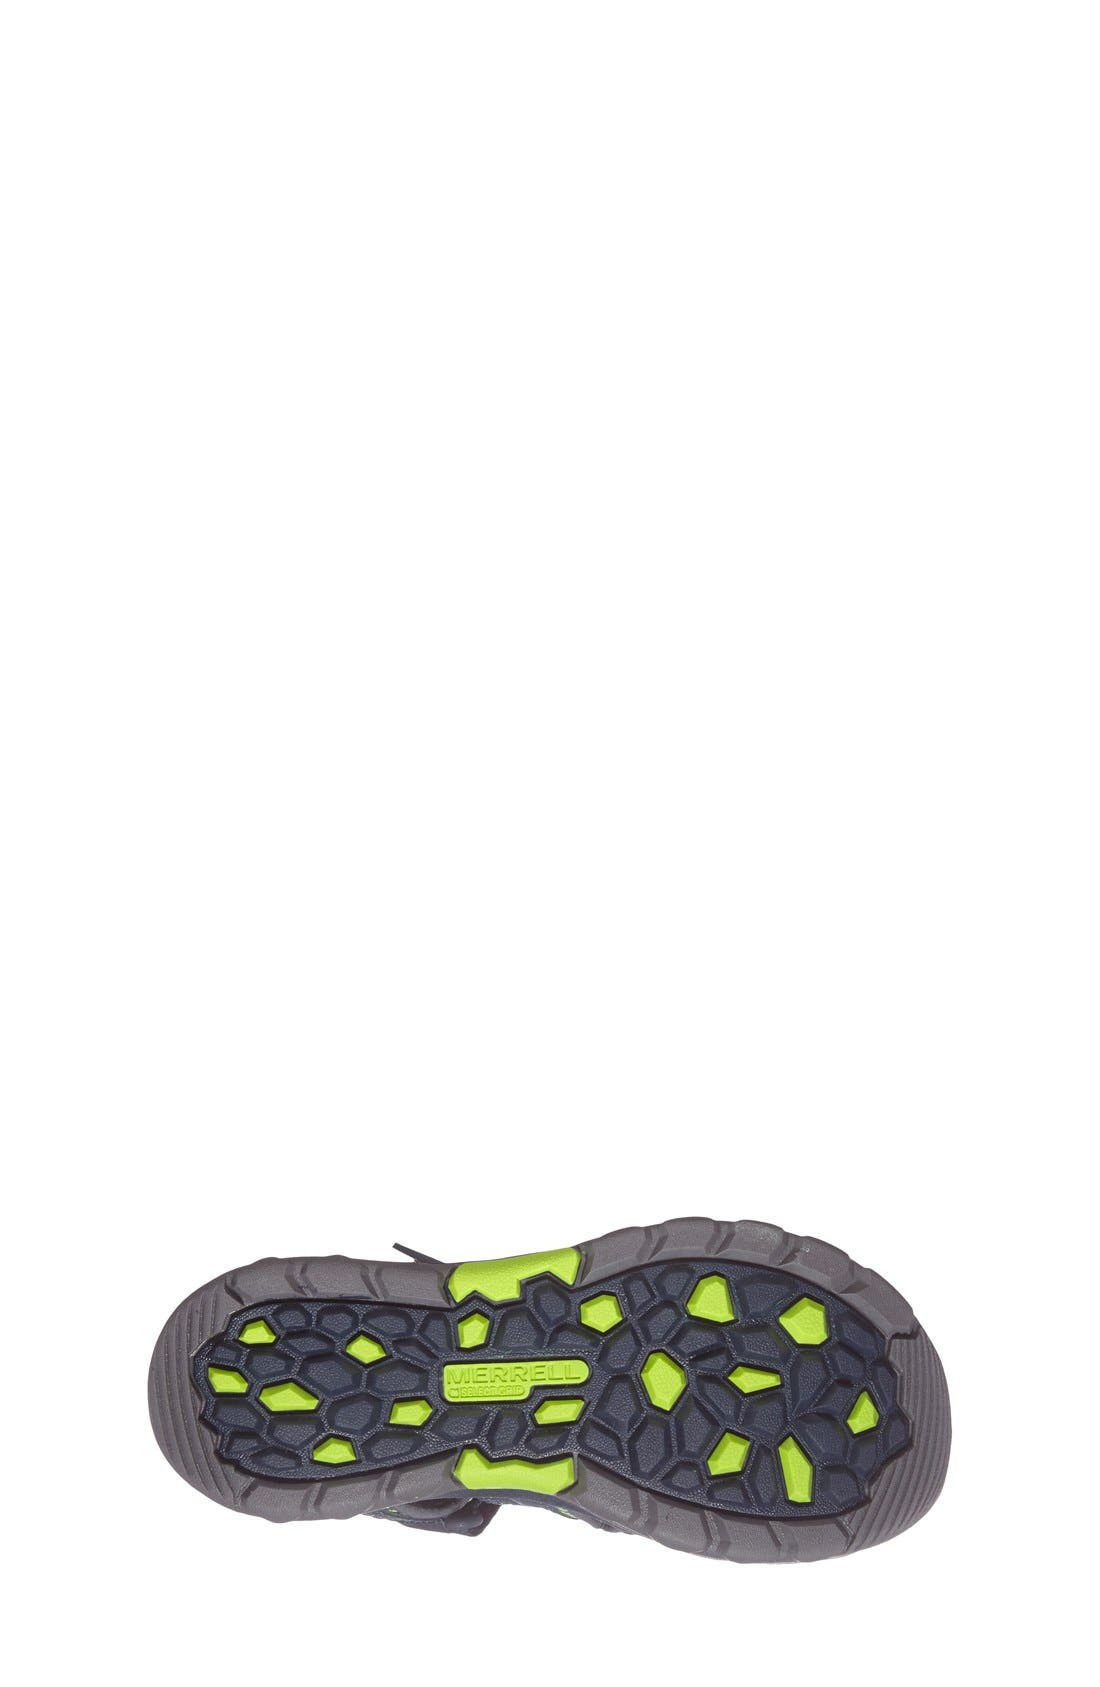 MERRELL, Hydro Water Sandal, Alternate thumbnail 4, color, NAVY/ GREEN